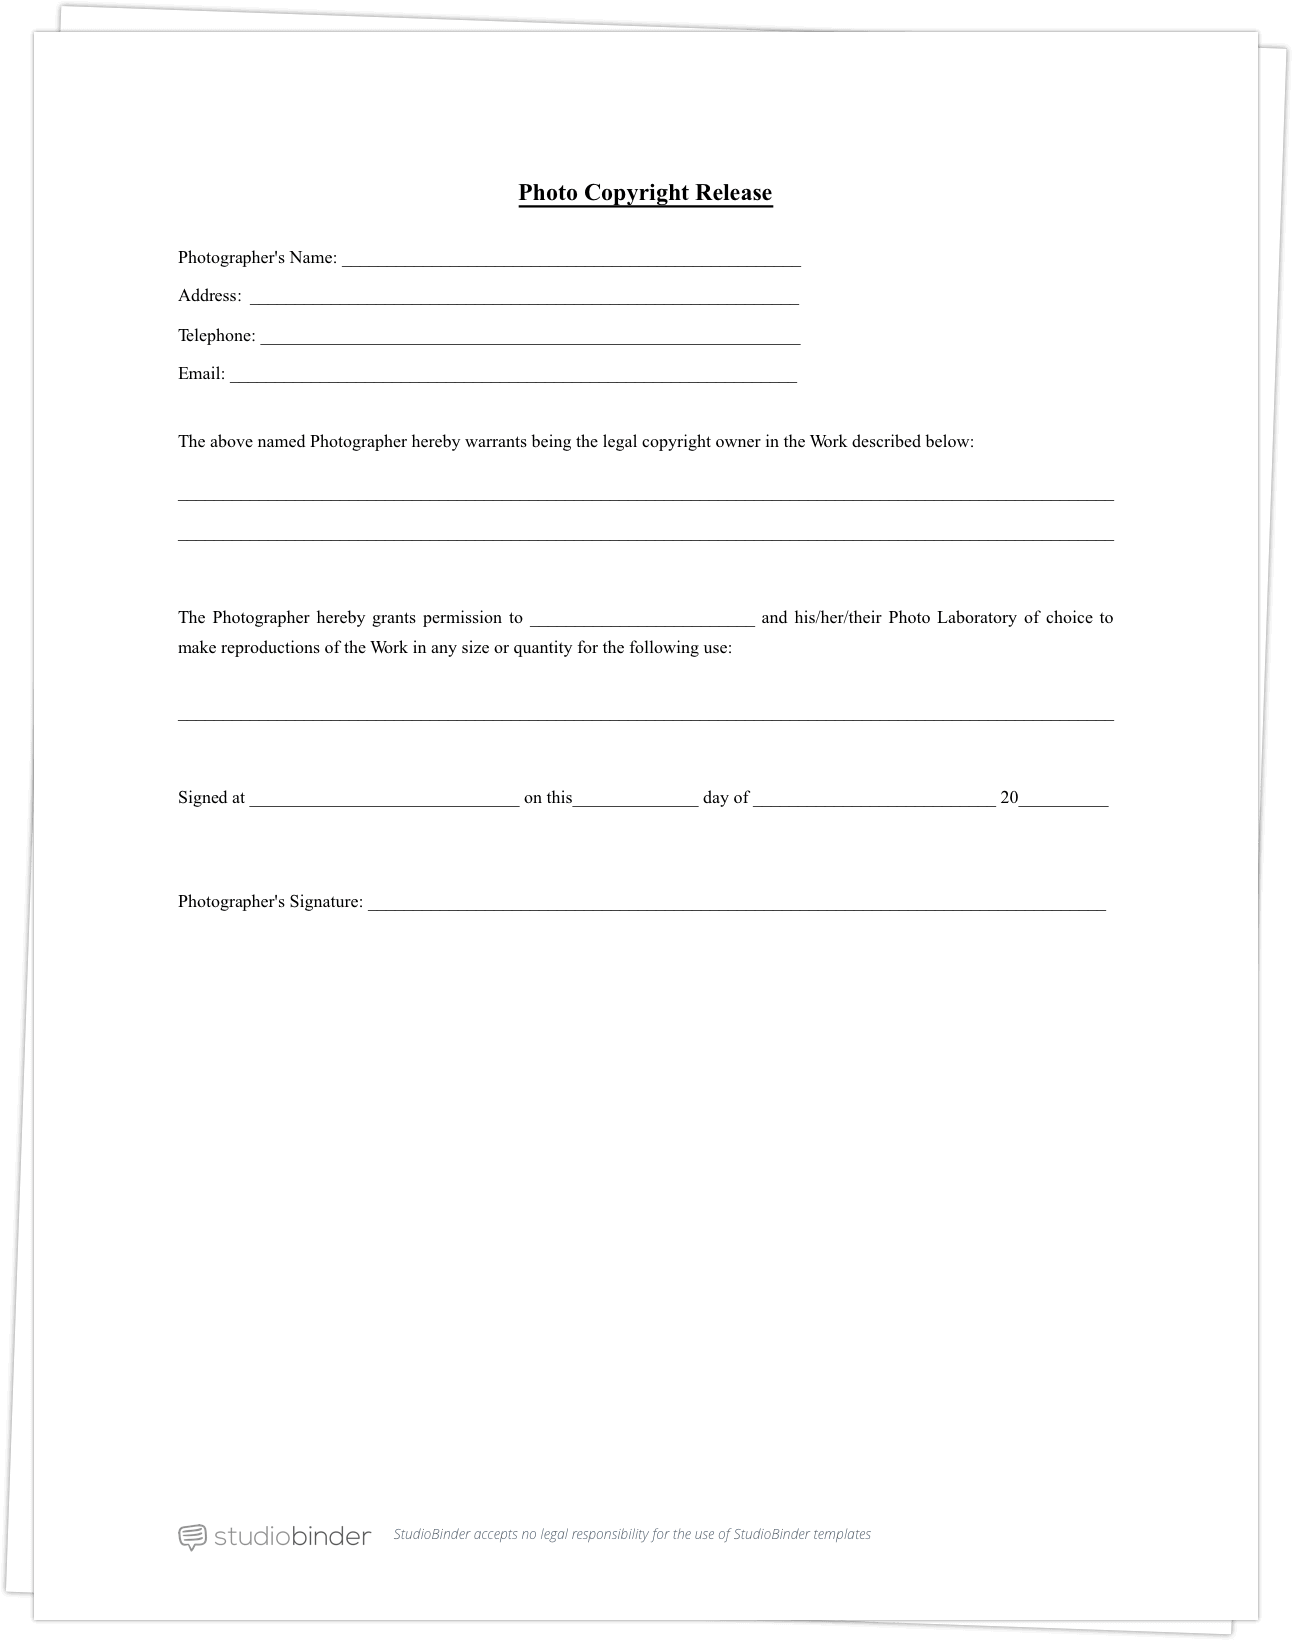 Superior Free Photo Release Form Template   StudioBinder